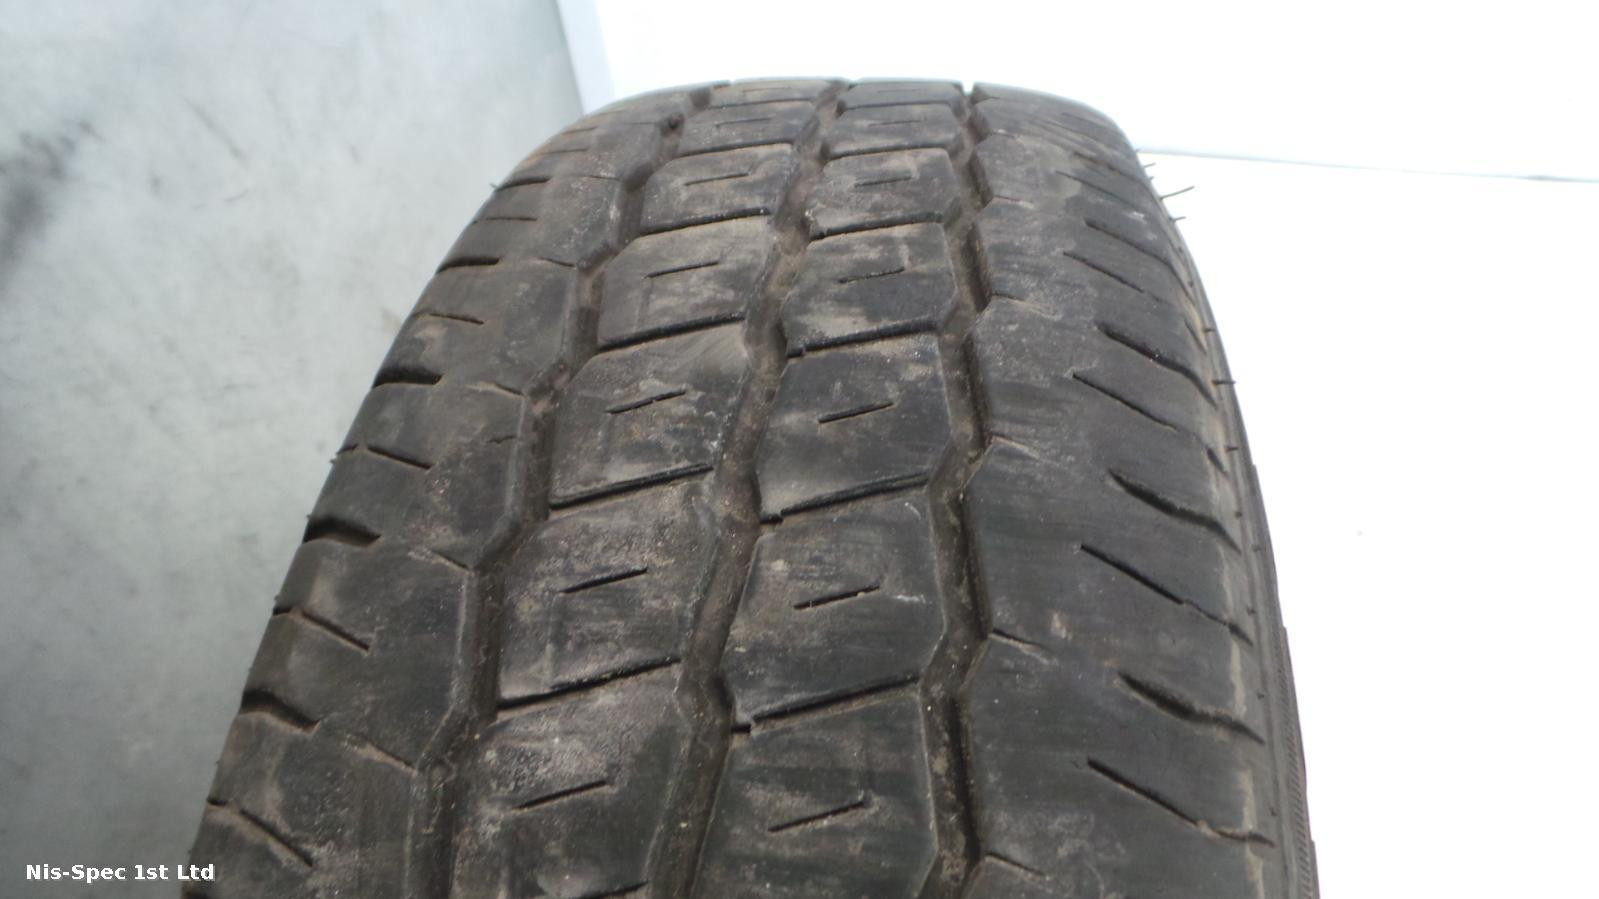 NISSAN NV200 STEEL WHEEL AND TYRE 175-70-14  WITH 4mm TREAD